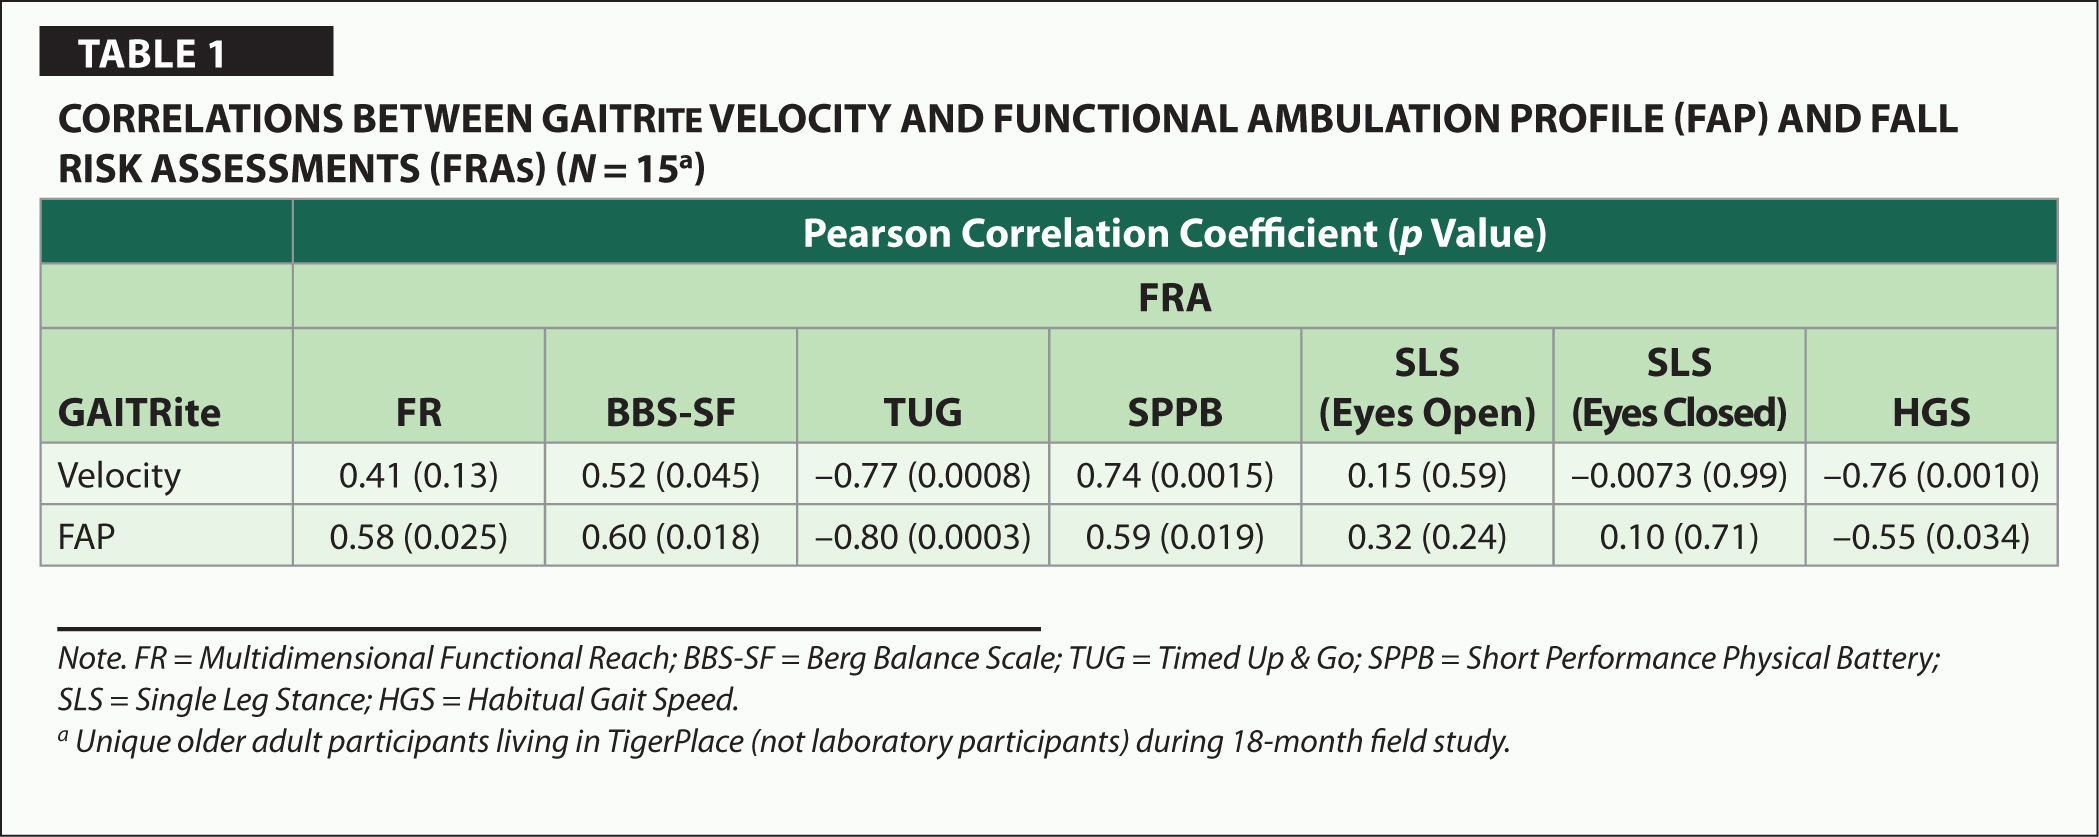 Correlations Between GAITRite Velocity and Functional Ambulation Profile (FAP) and Fall Risk Assessments (FRAs) (N = 15a)